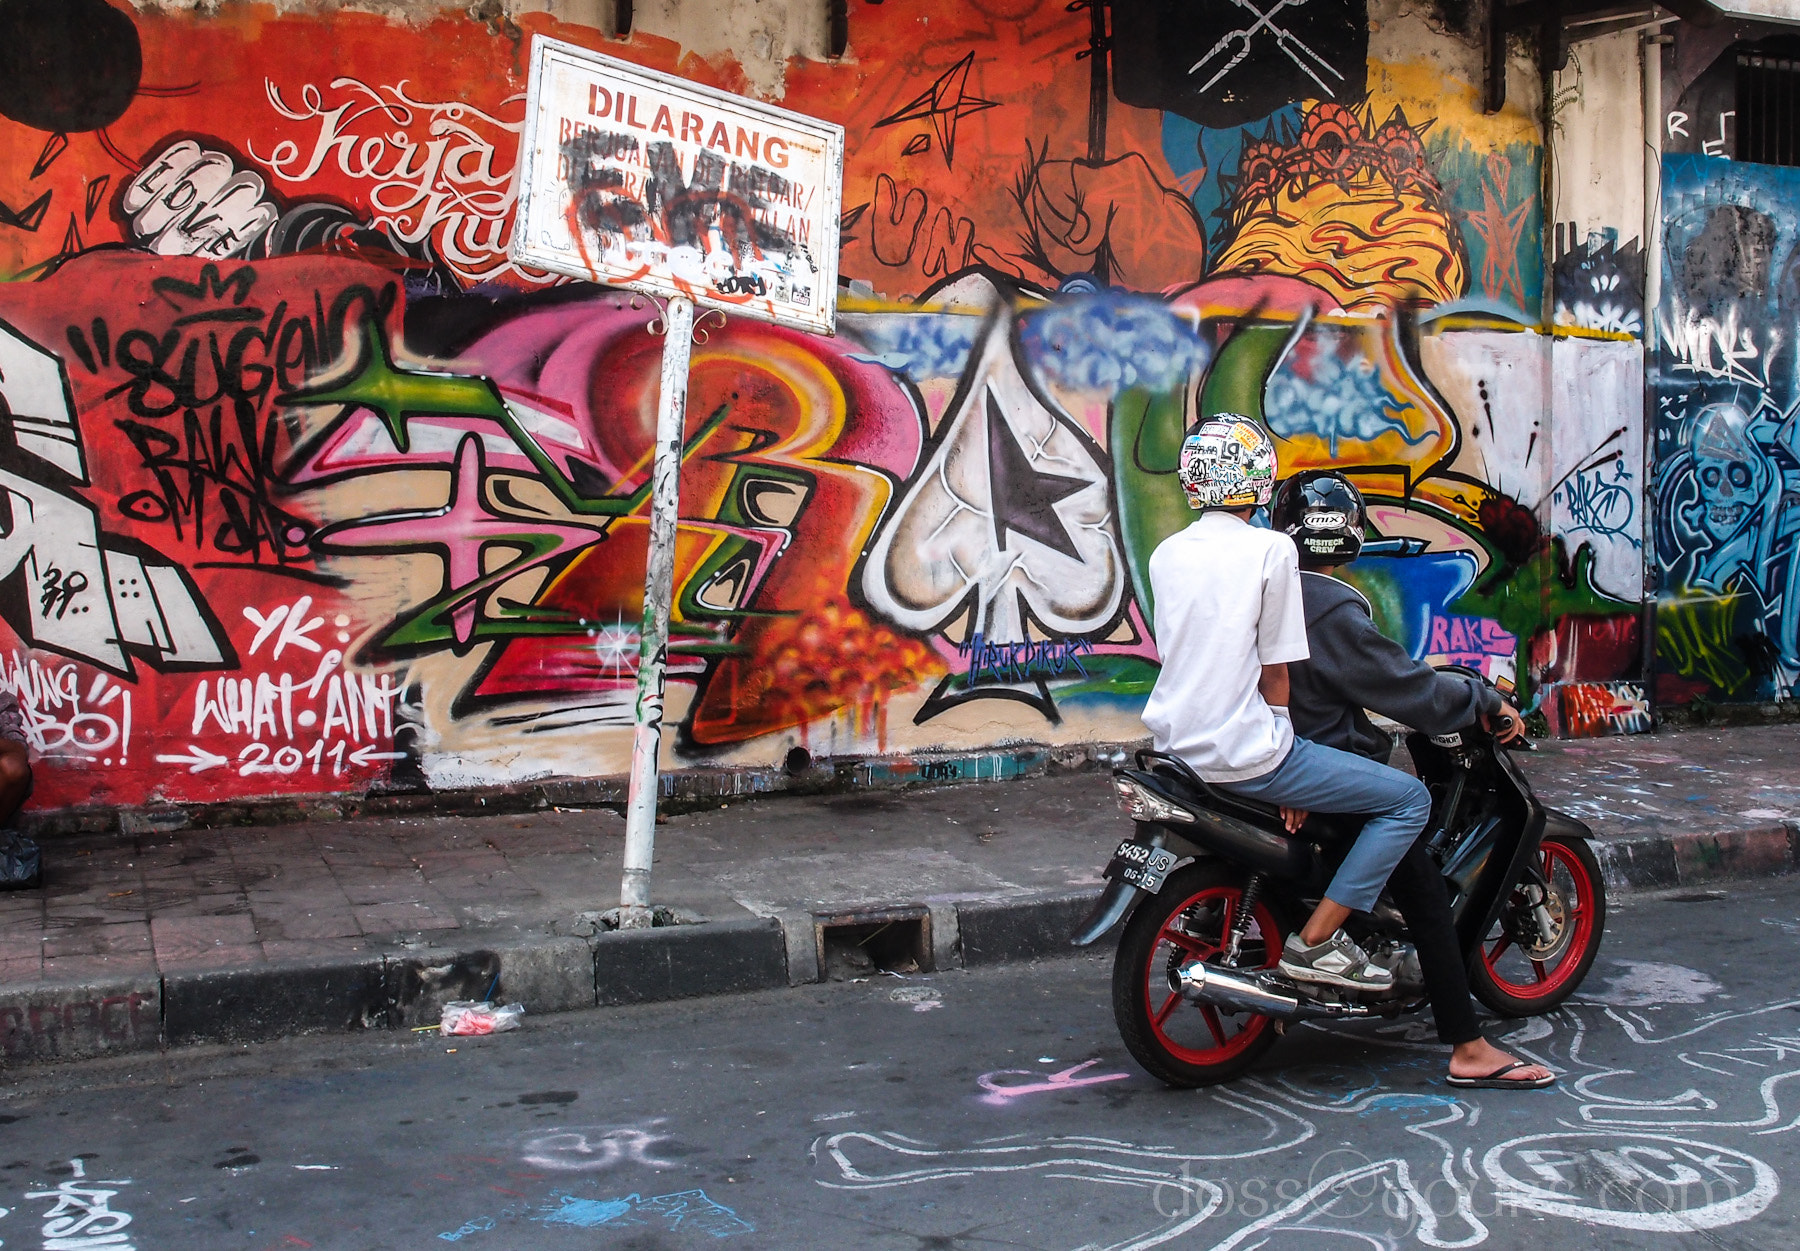 Photograph Yogyakarta Graffarti by Doss@yours Photography on 500px